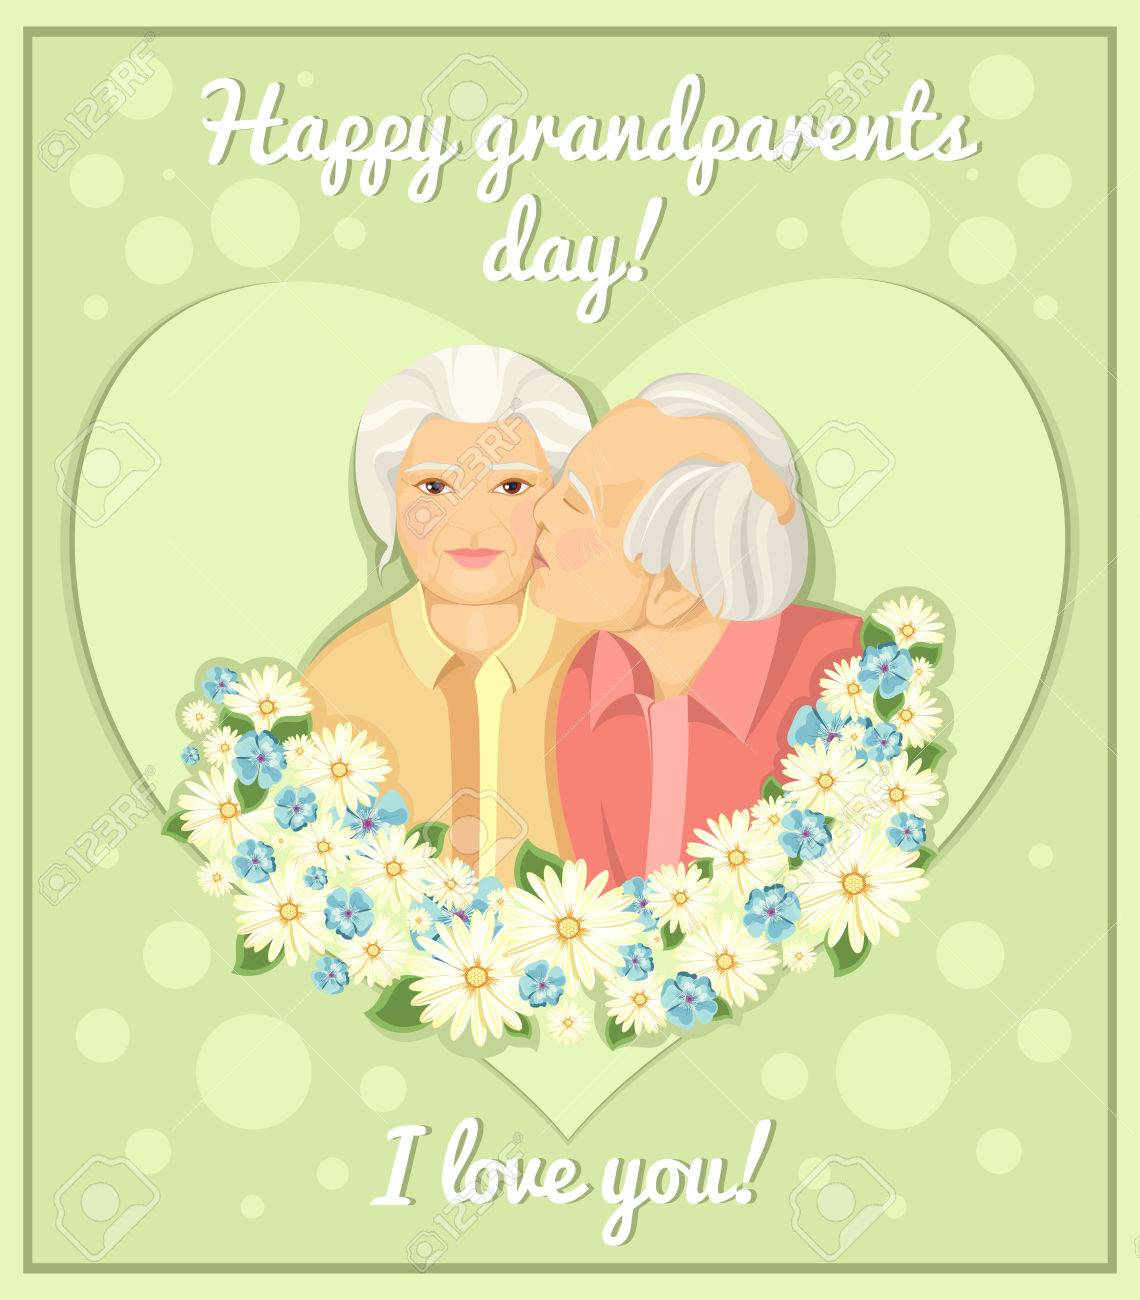 Holiday Card Grandparents Day Married Couple Grandmother And